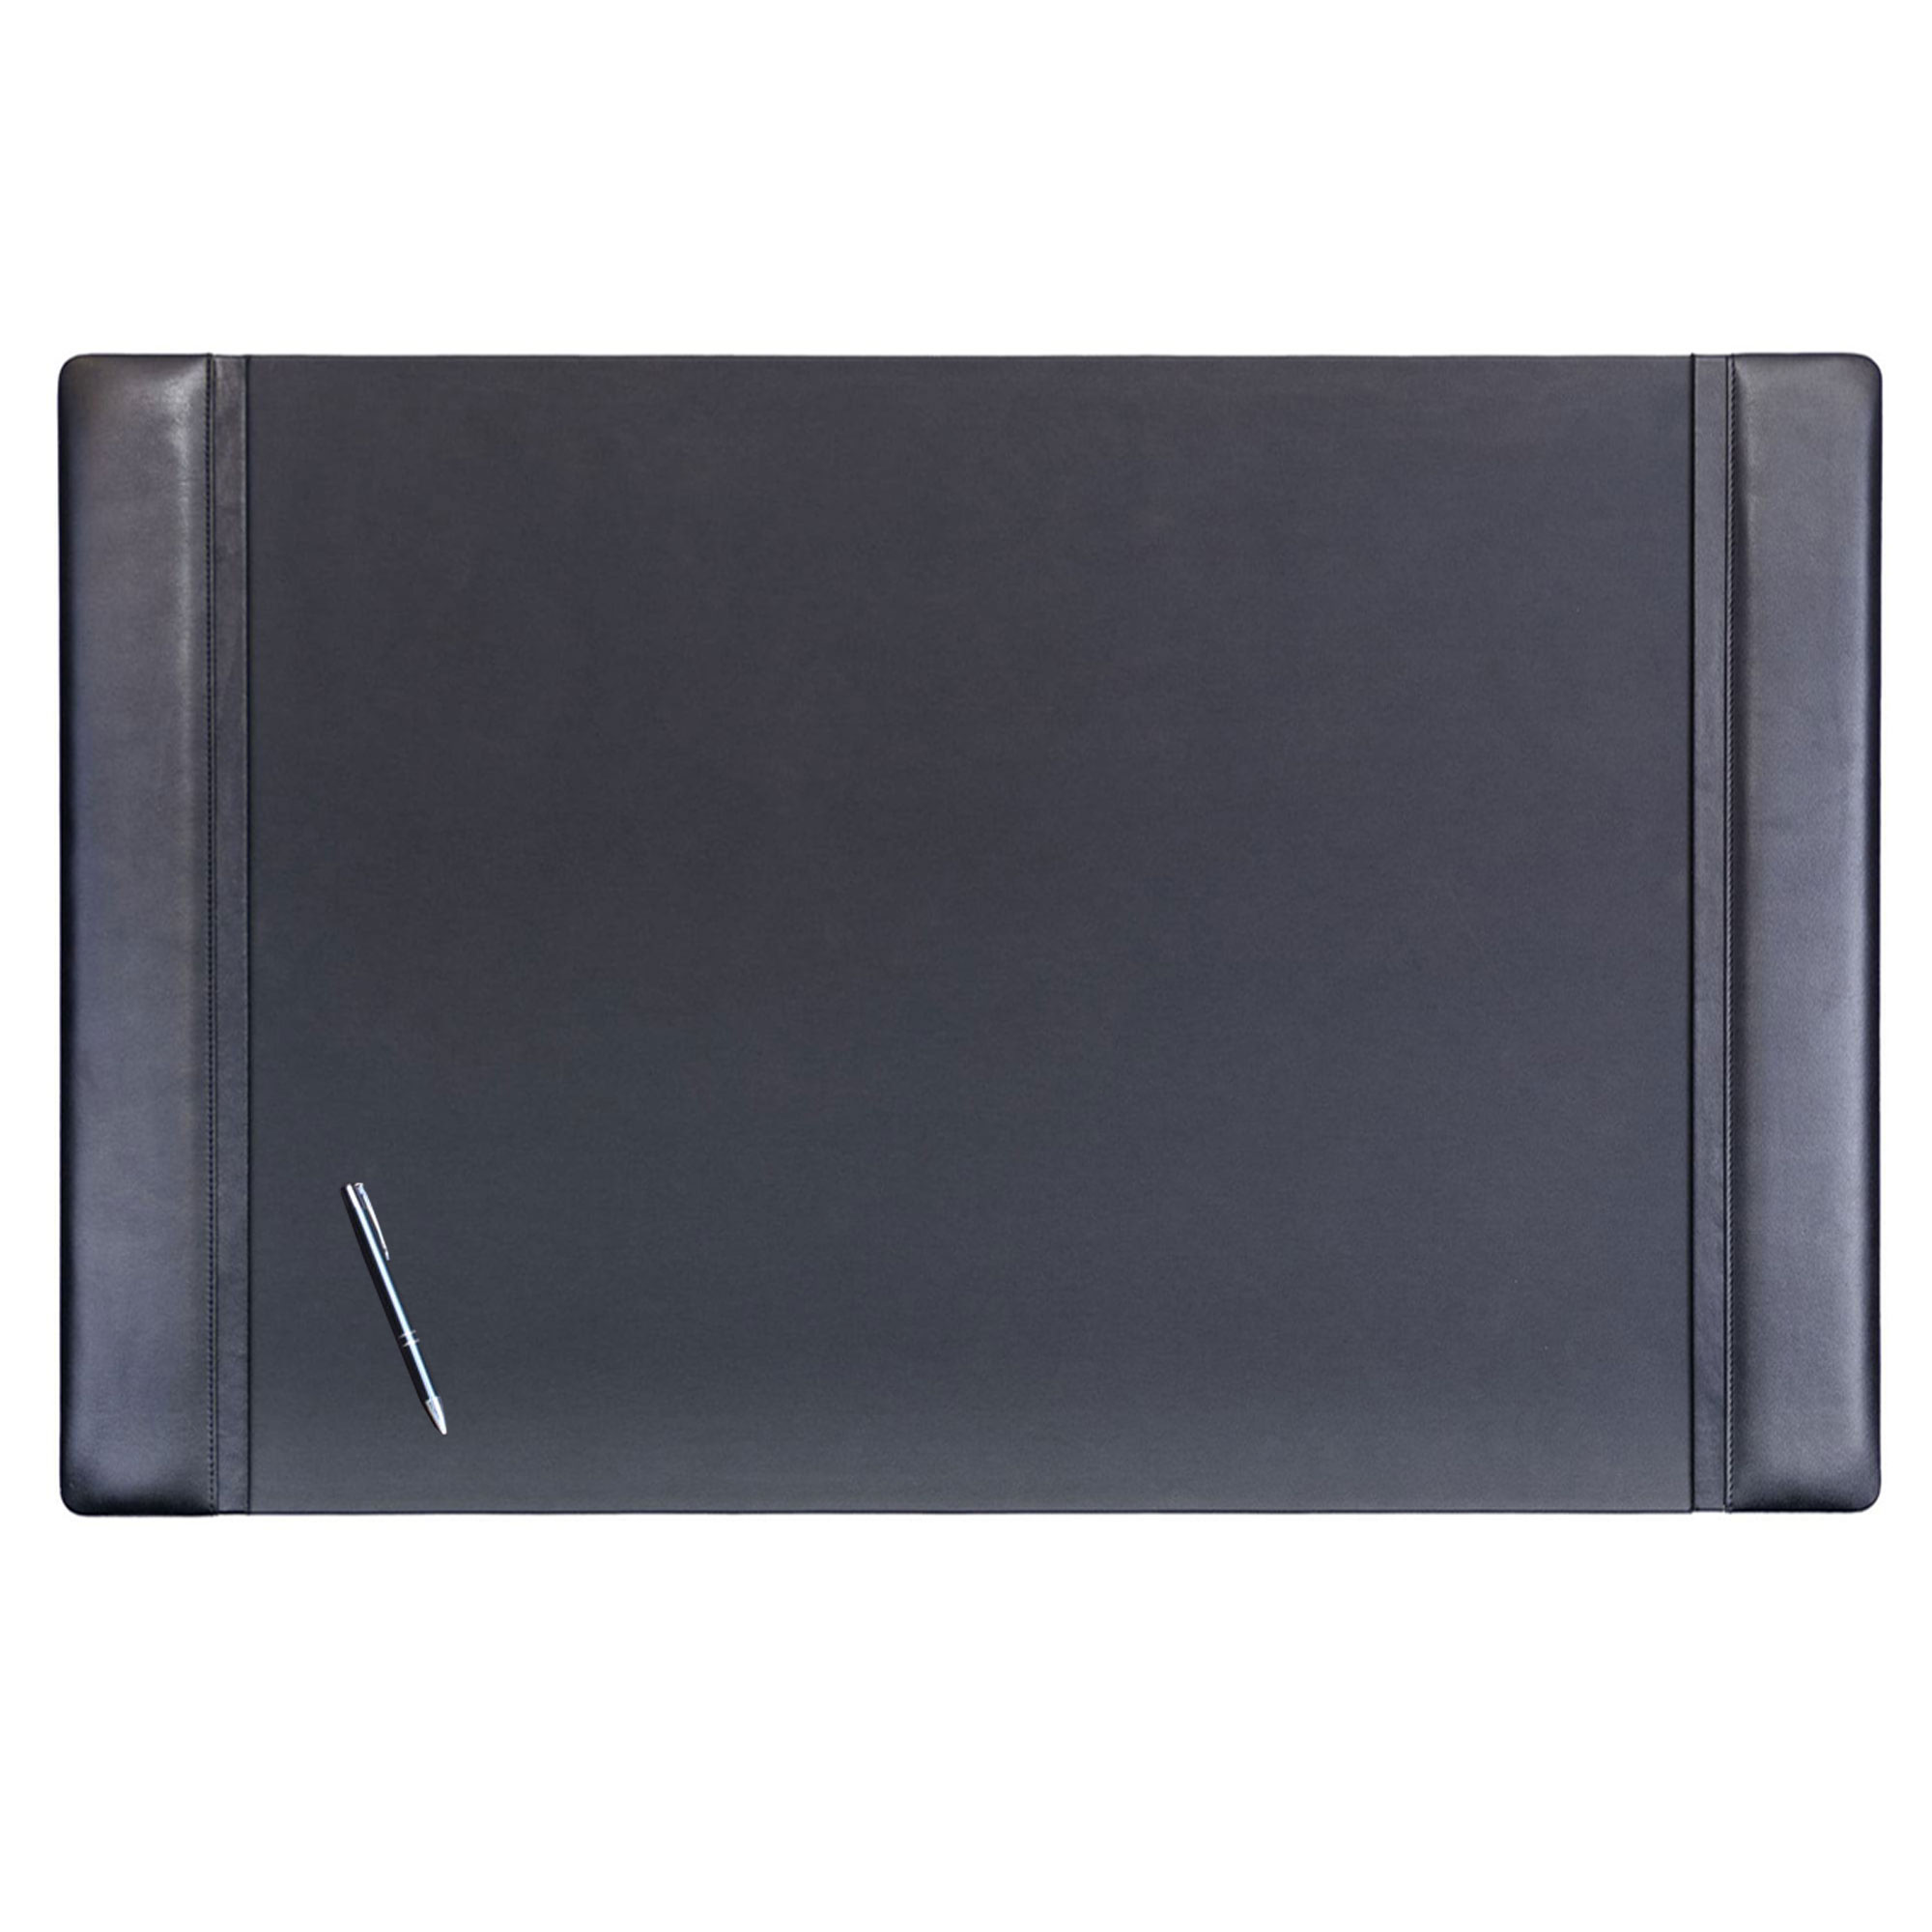 Black Leather Desk Pad 38 X 24